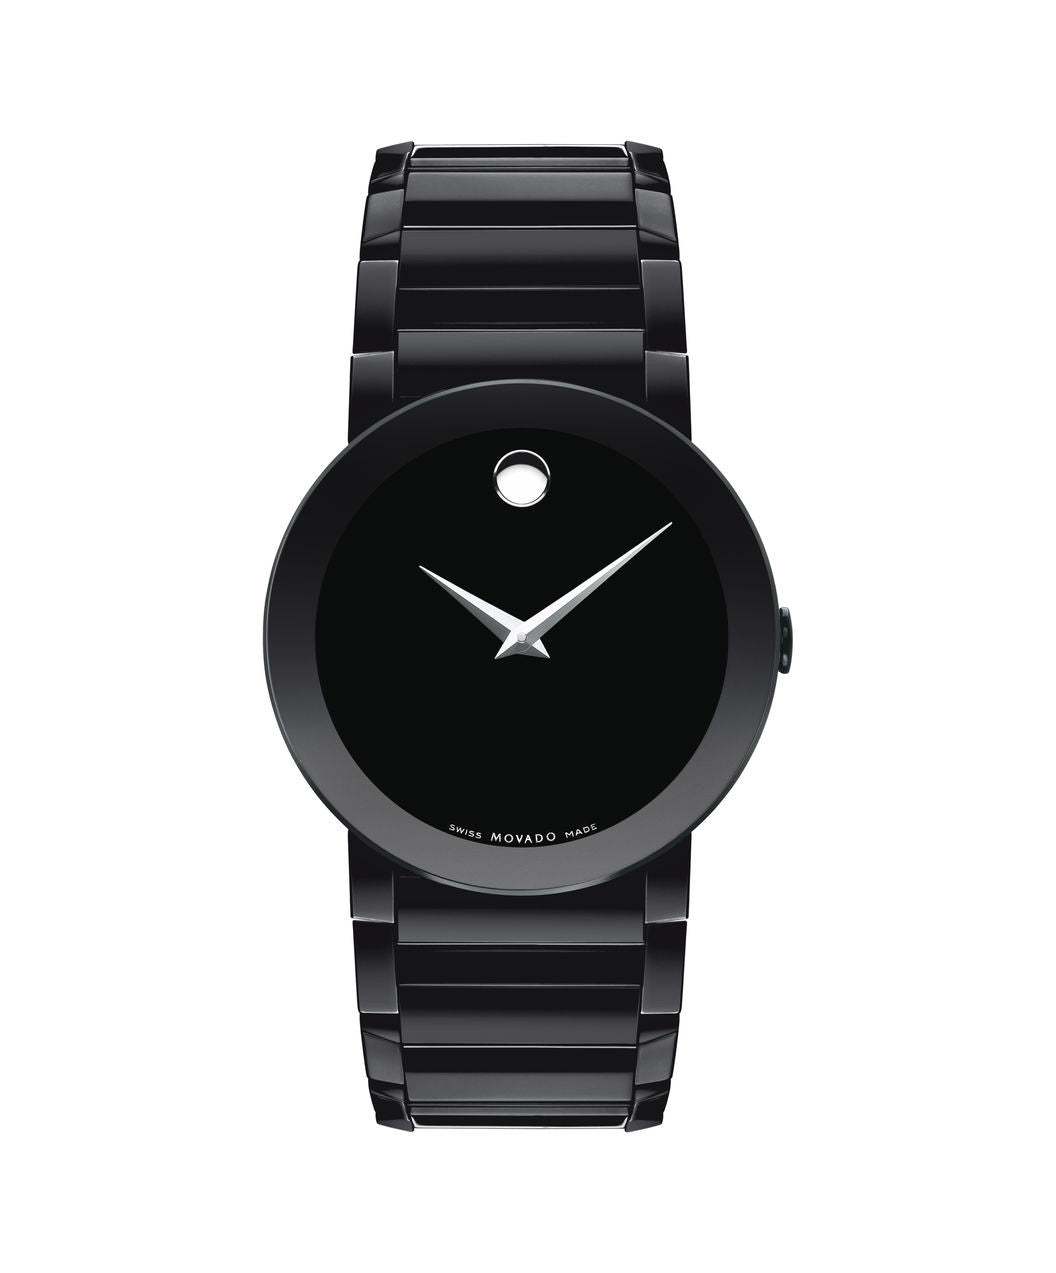 Movado Men's Sapphire Watch, 38 mm Black PVD-Finished Stainless Steel Bezel-Free 0606307 - Arnik Jewellers